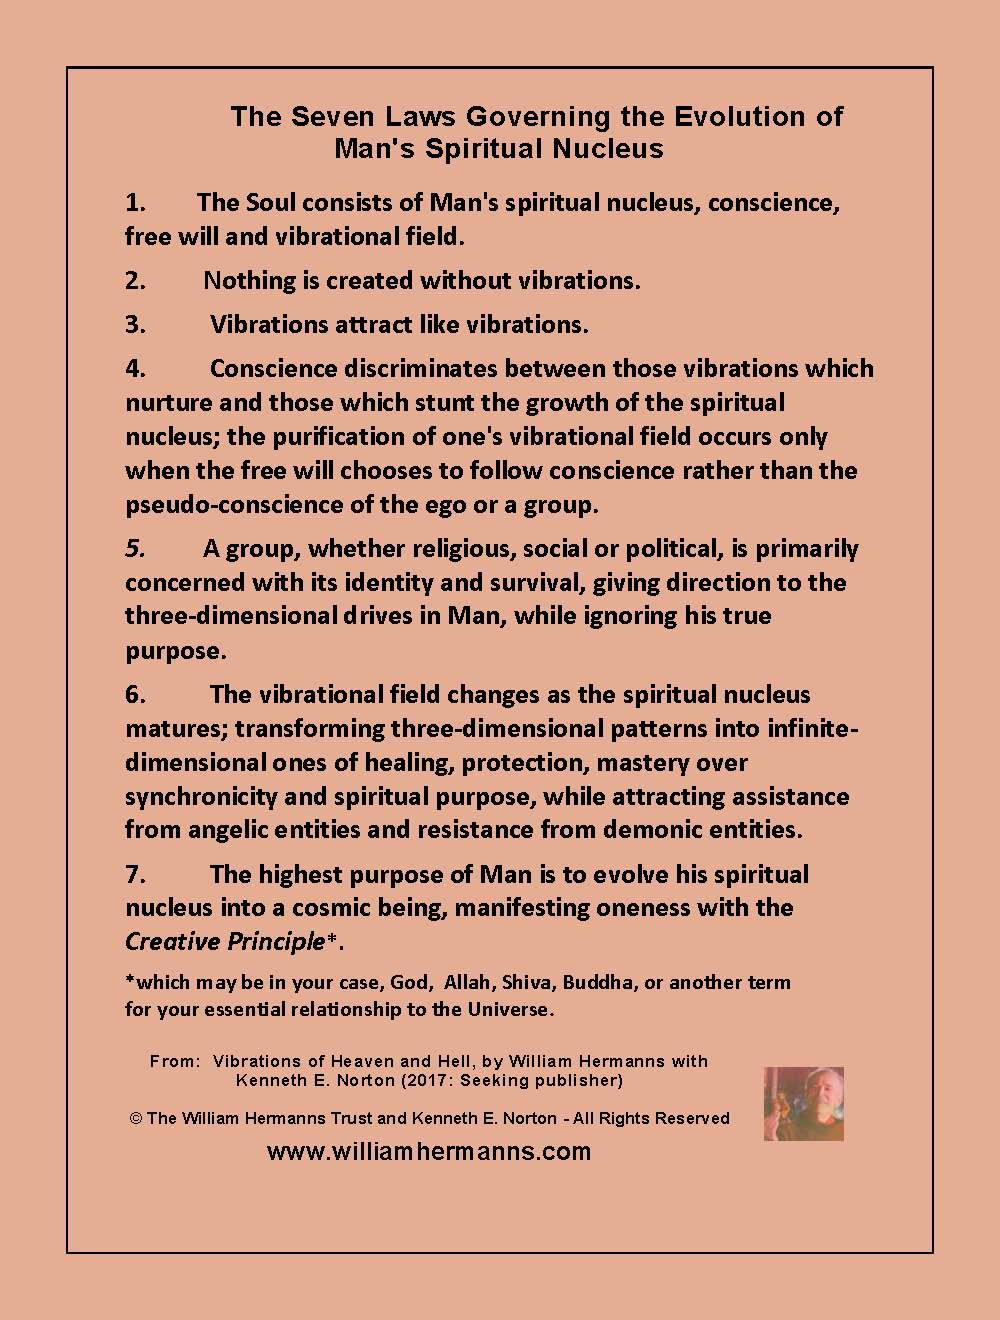 The Seven Laws Governing the Evolution of Man's Spiritual Nucleus